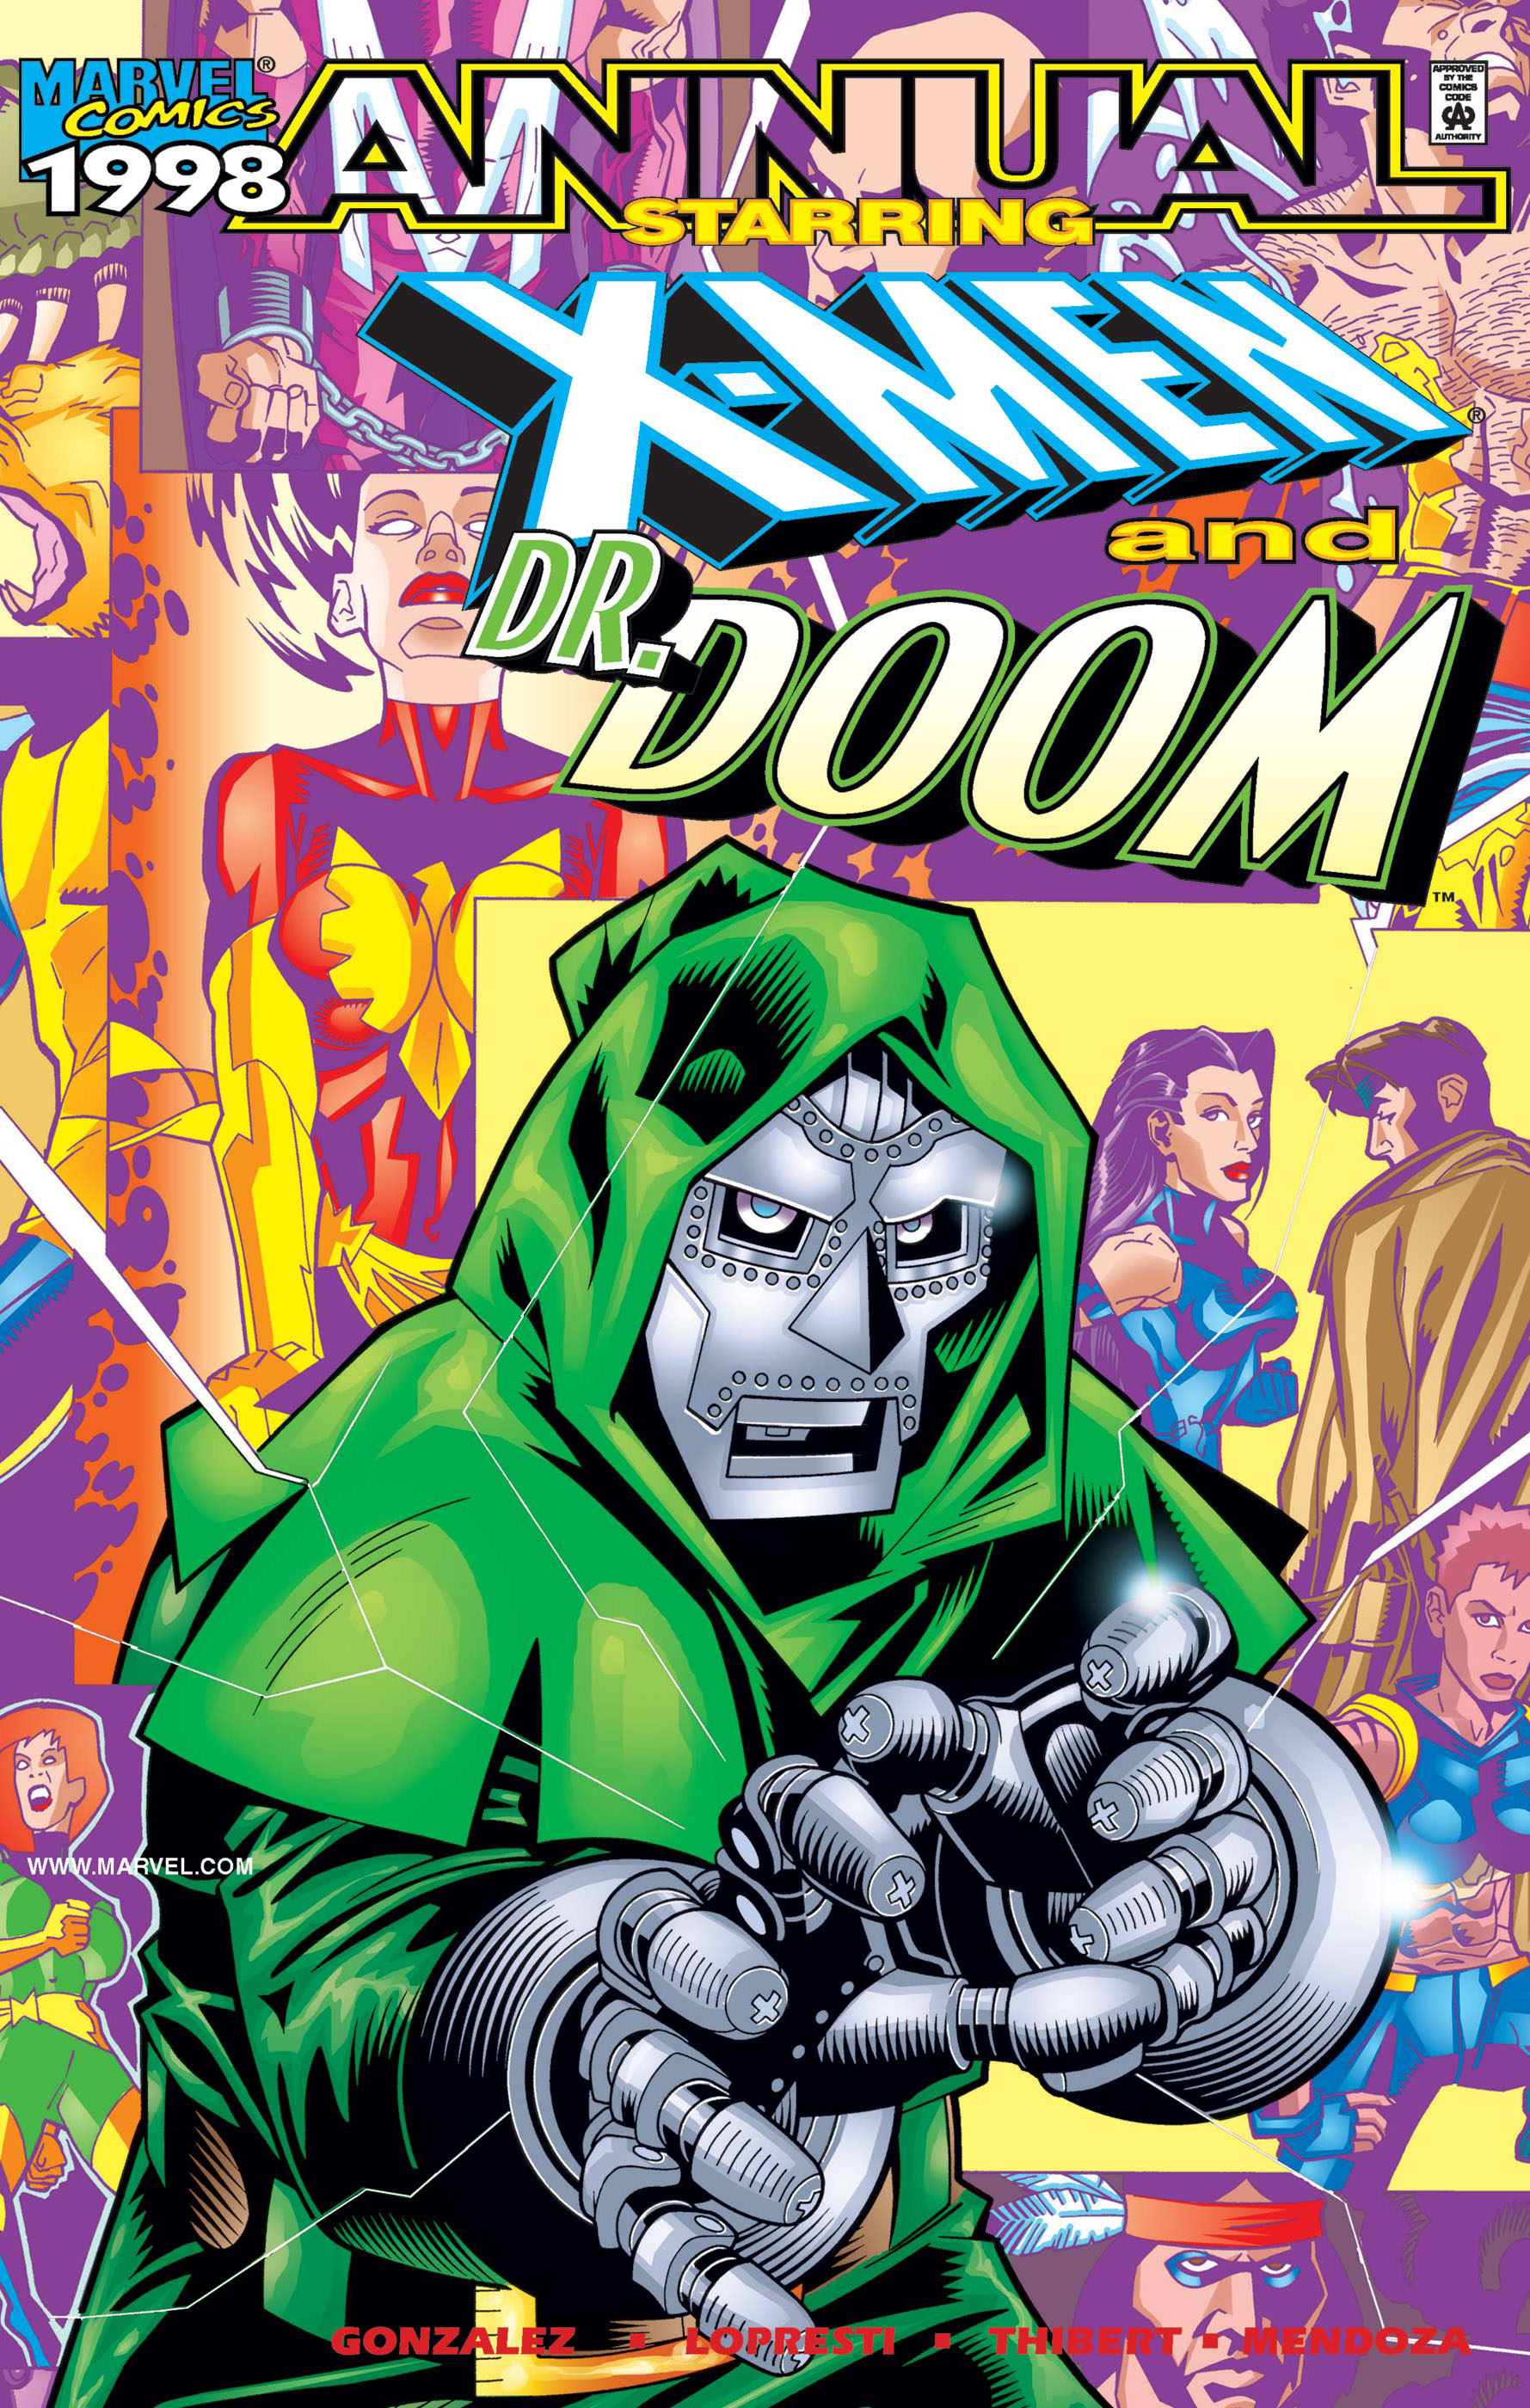 X-Men/Dr. Doom Annual (1998) #1